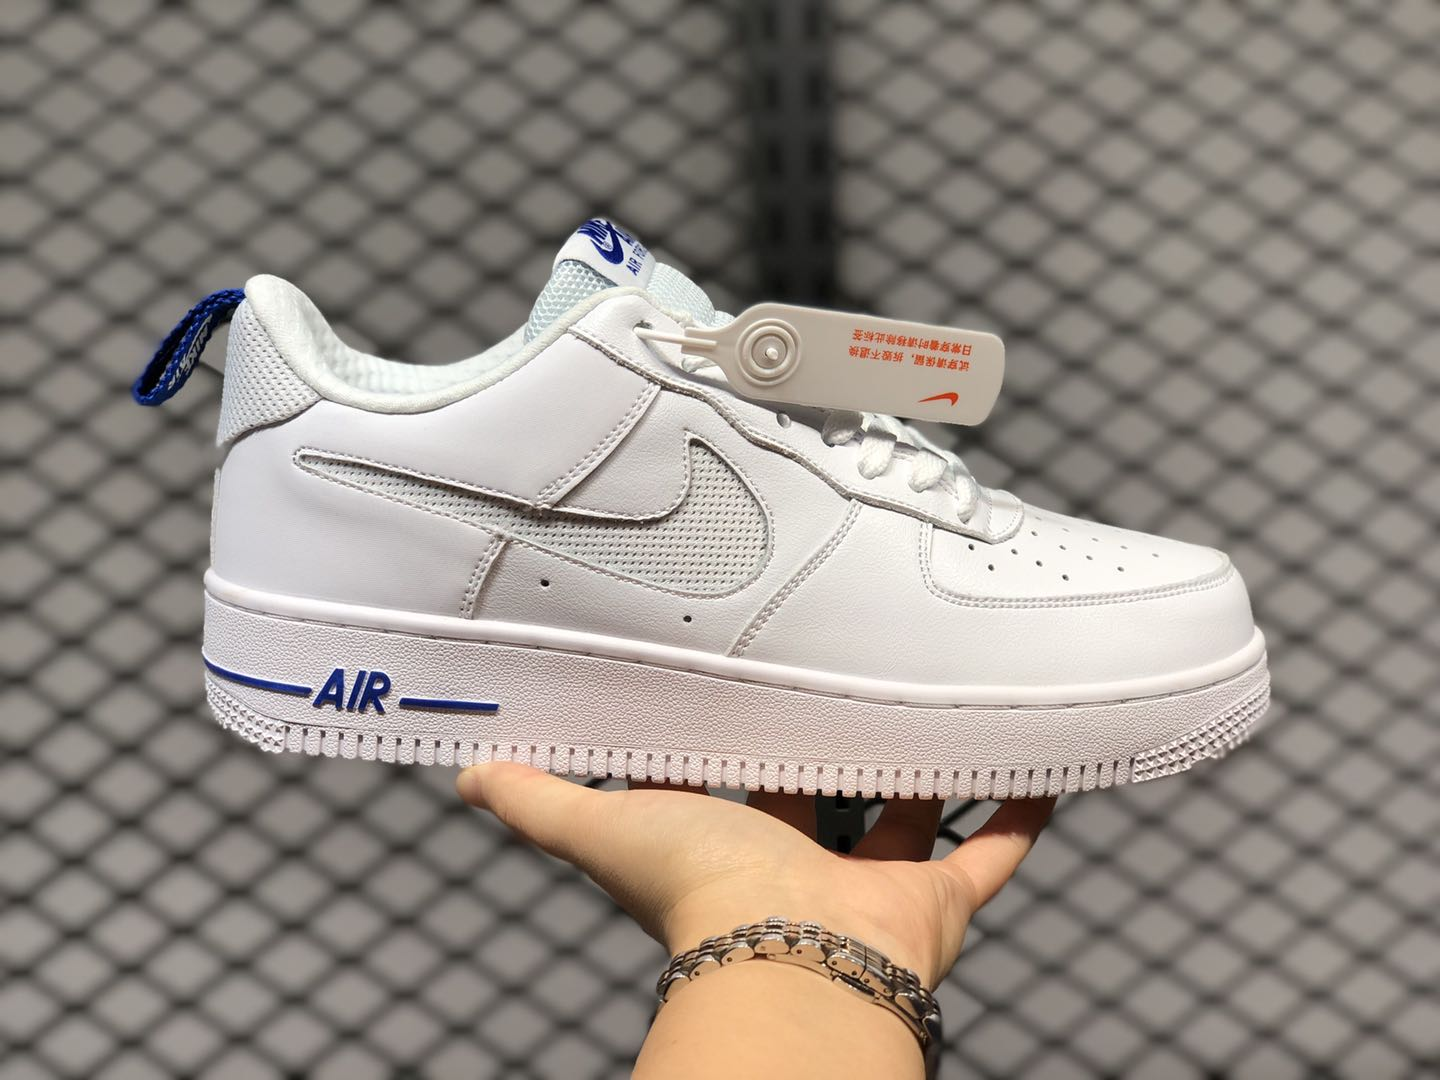 AIR FORCE 1 LOW 'WHITE ROYAL BLUE'